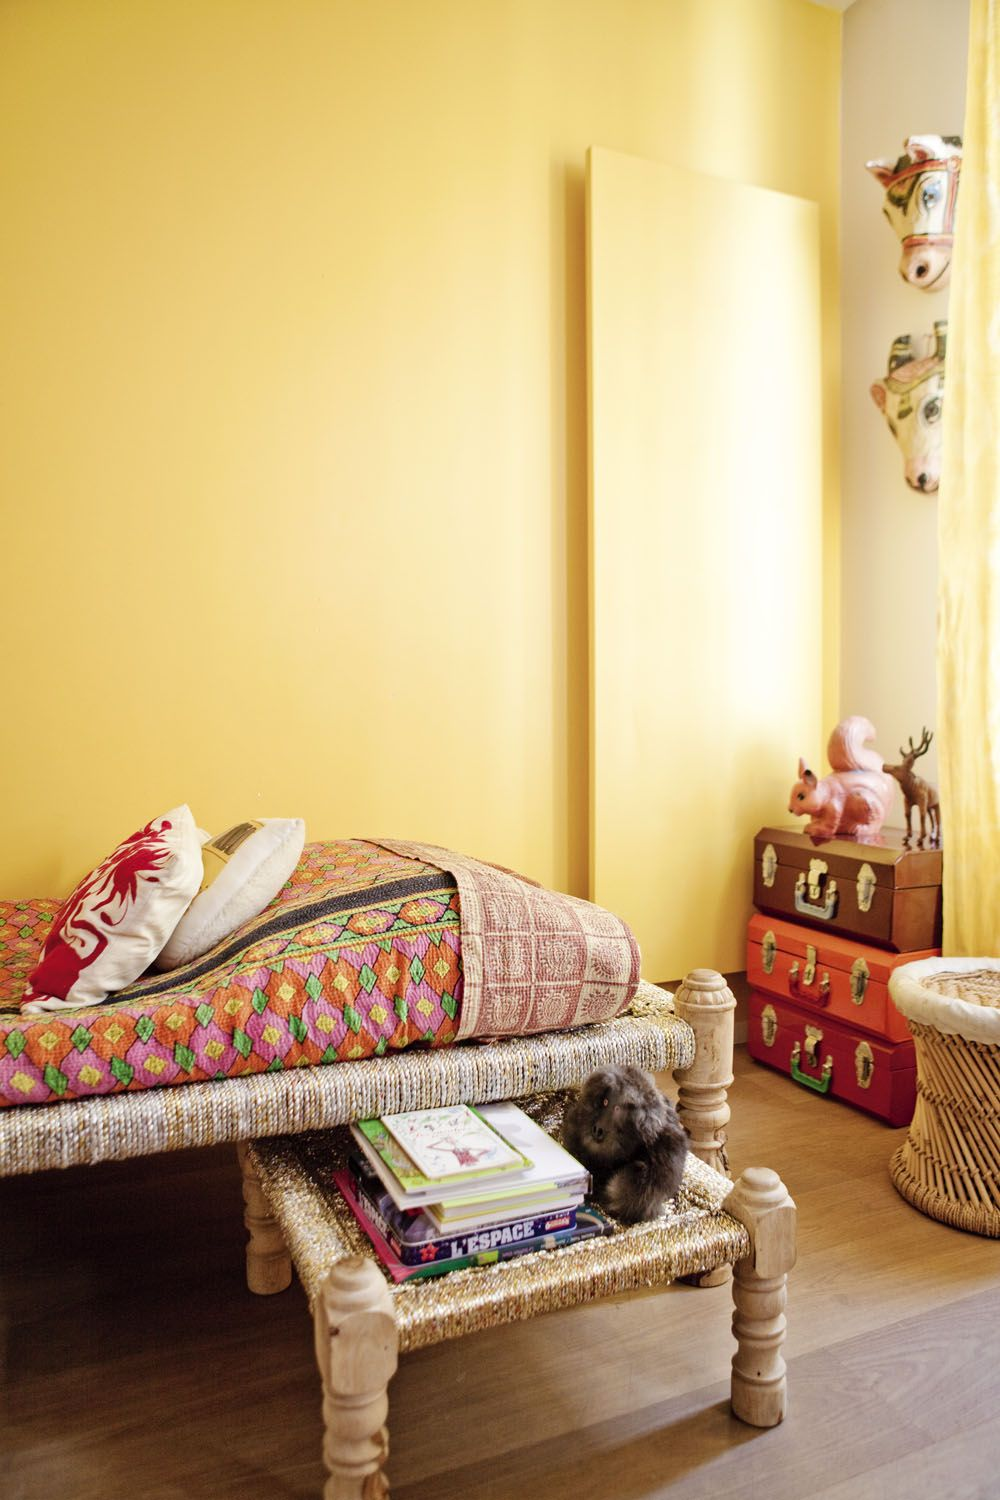 Paris : french bollywood | Room Ideas | Pinterest | Yellow wall ...